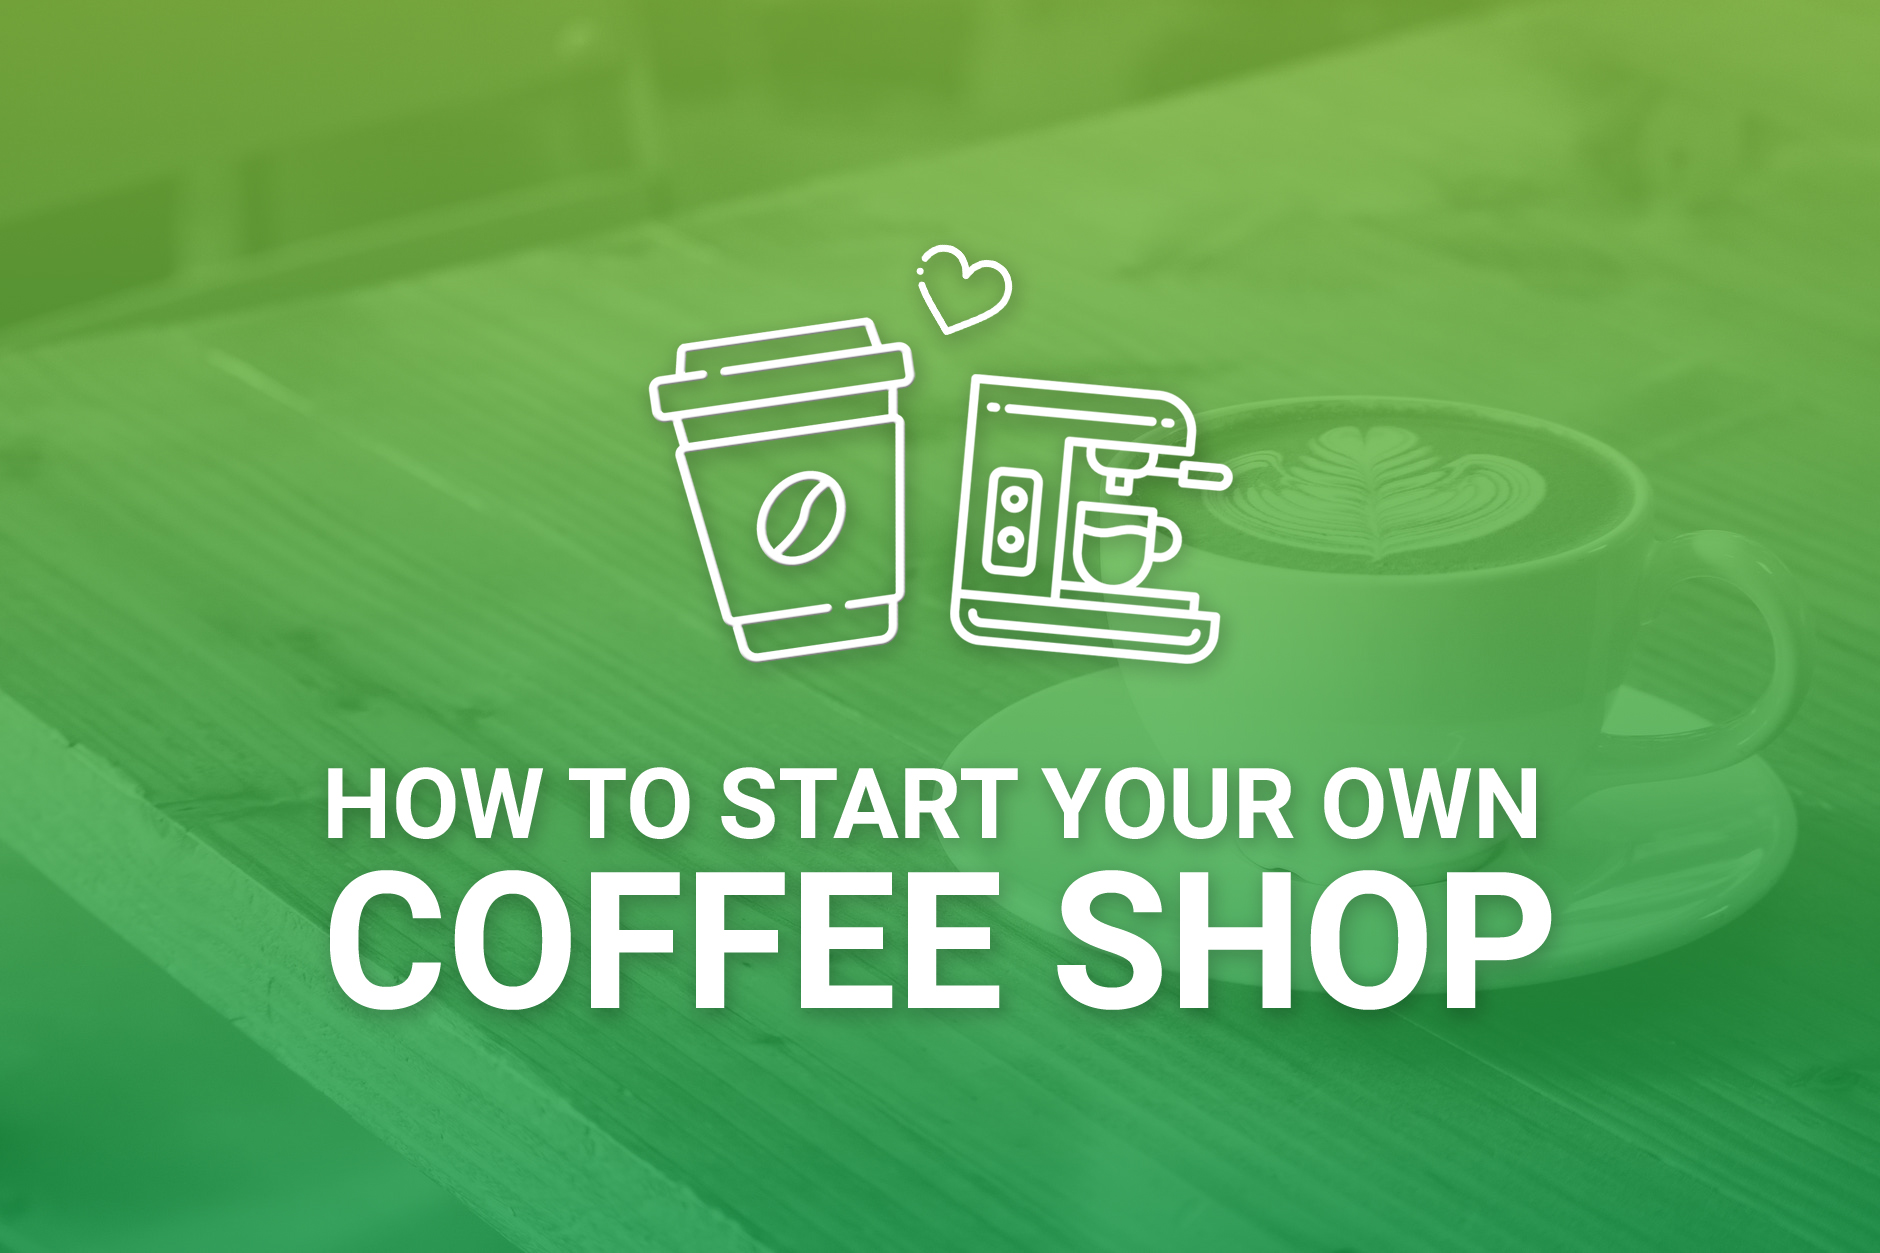 Start Your Own Coffee Shop